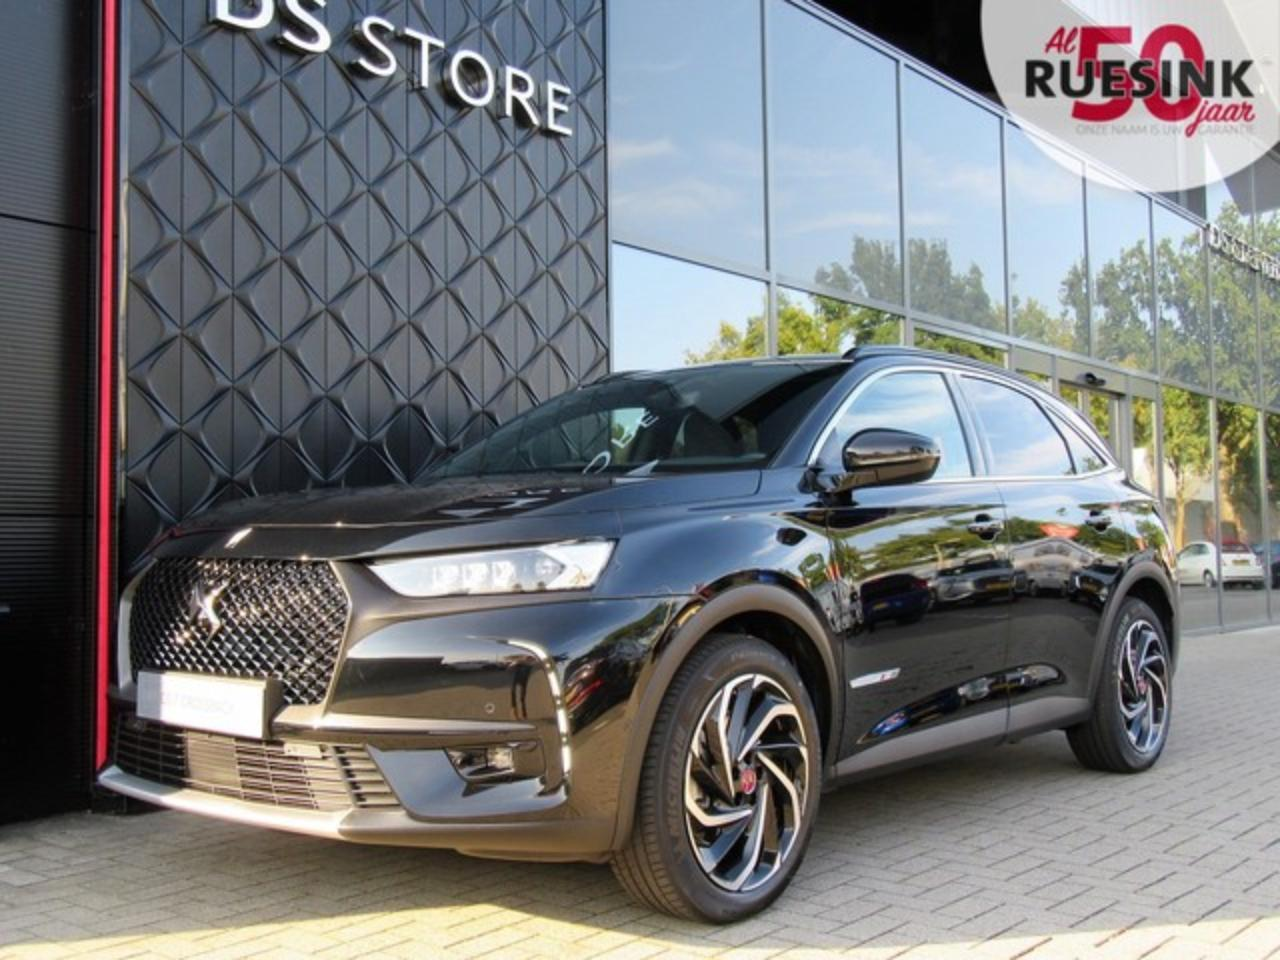 Ds Ds 7 Crossback E-TENSE 300PK 4x4 AUTMAAT/PLUGIN!/PERFORMANCE LINE